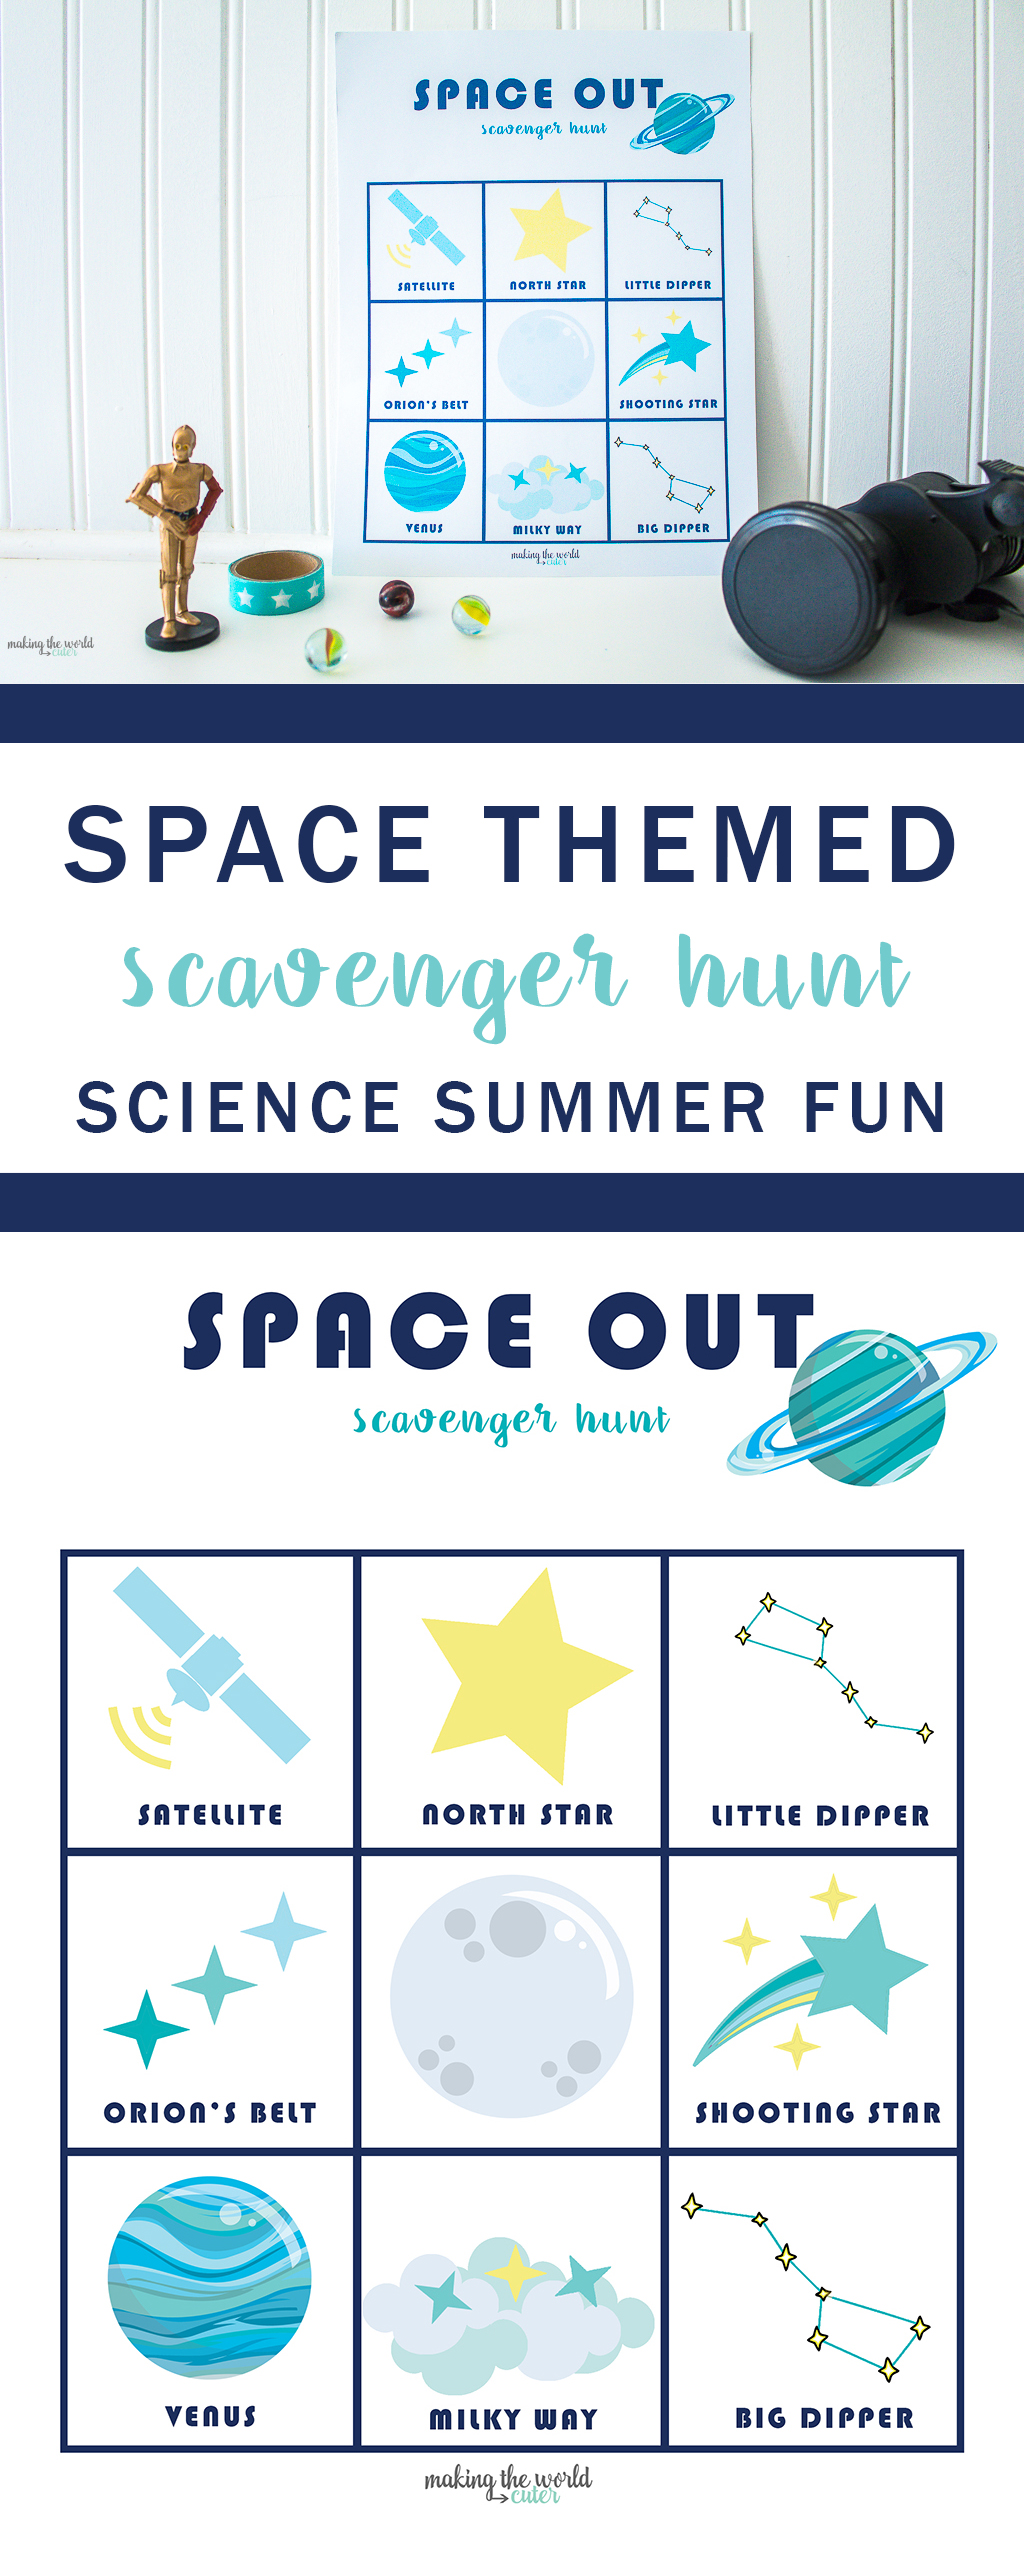 https://thecraftingchicks.com/wp-content/uploads/2017/07/Space-themed-scavenger-hunt.jpg